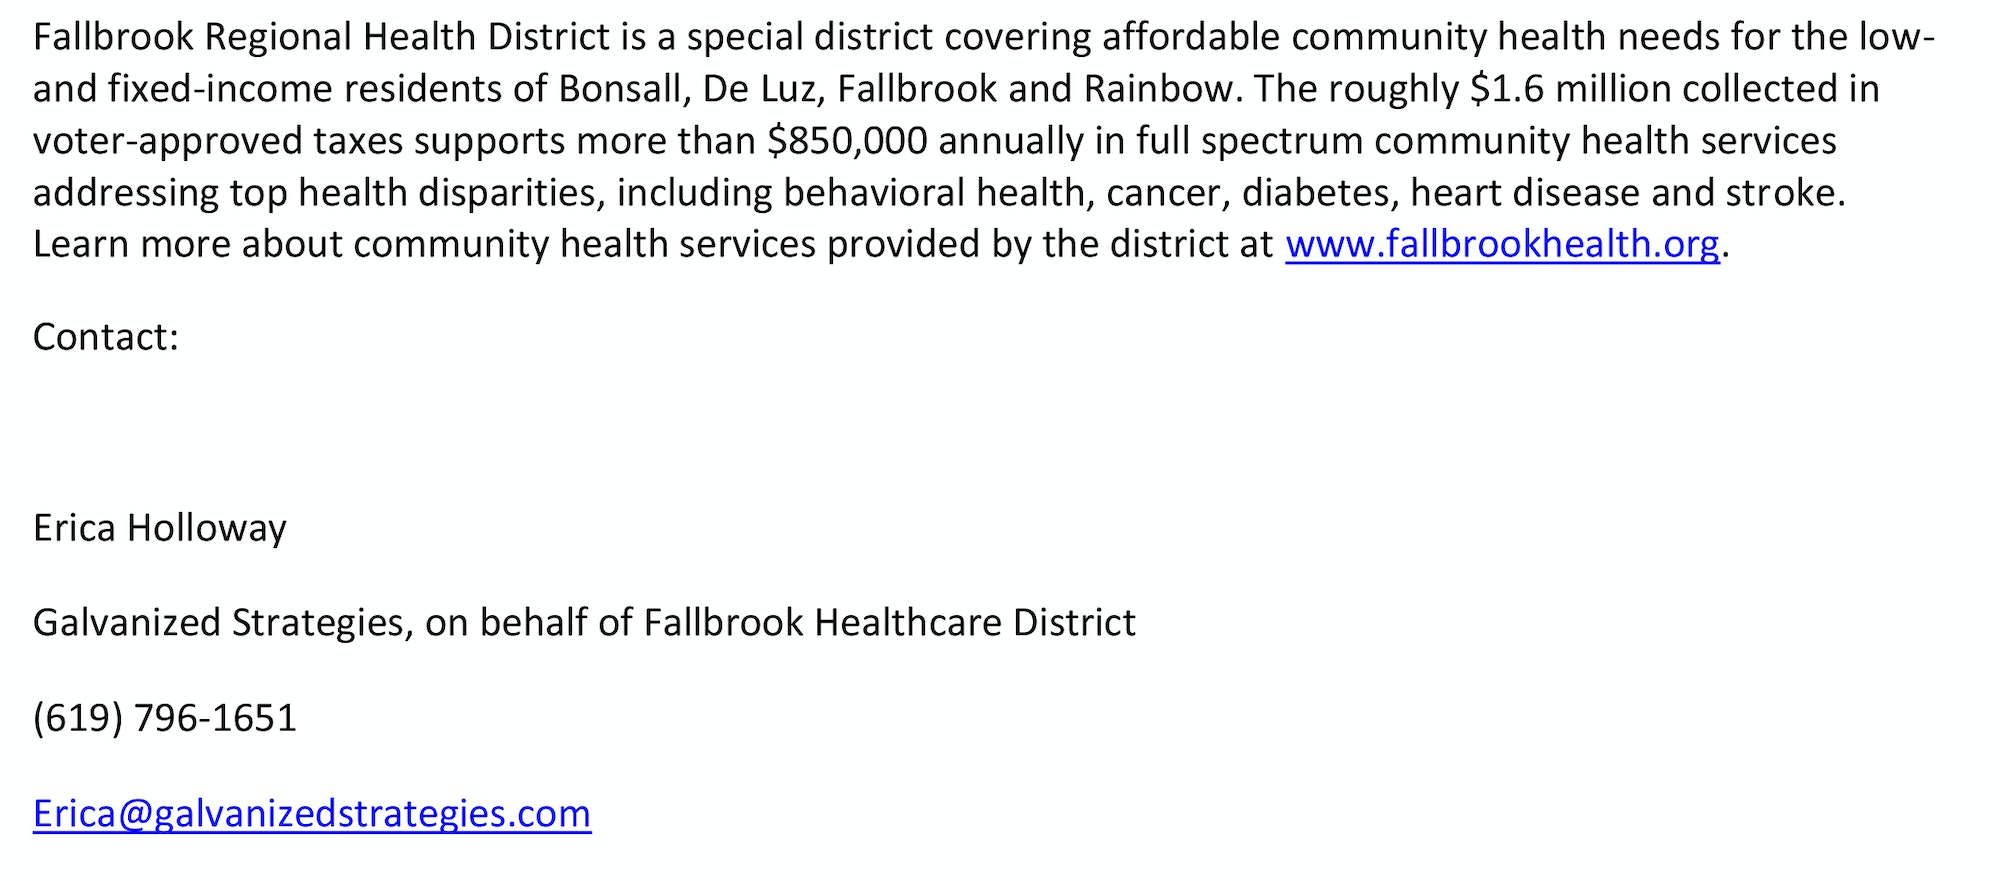 Fallbrook Regional Health District is a special district covering affordable community health needs for the low- and fixed-income residents of Bonsall, De Luz, Fallbrook and Rainbow. The roughly $1.6 million collected in voter-approved taxes supports more than $850,000 annually in full spectrum community health services addressing top health disparities, including behavioral health, cancer, diabetes, heart disease and stroke. Learn more about community health services provided by the district at www.fallbrookhealth.org.